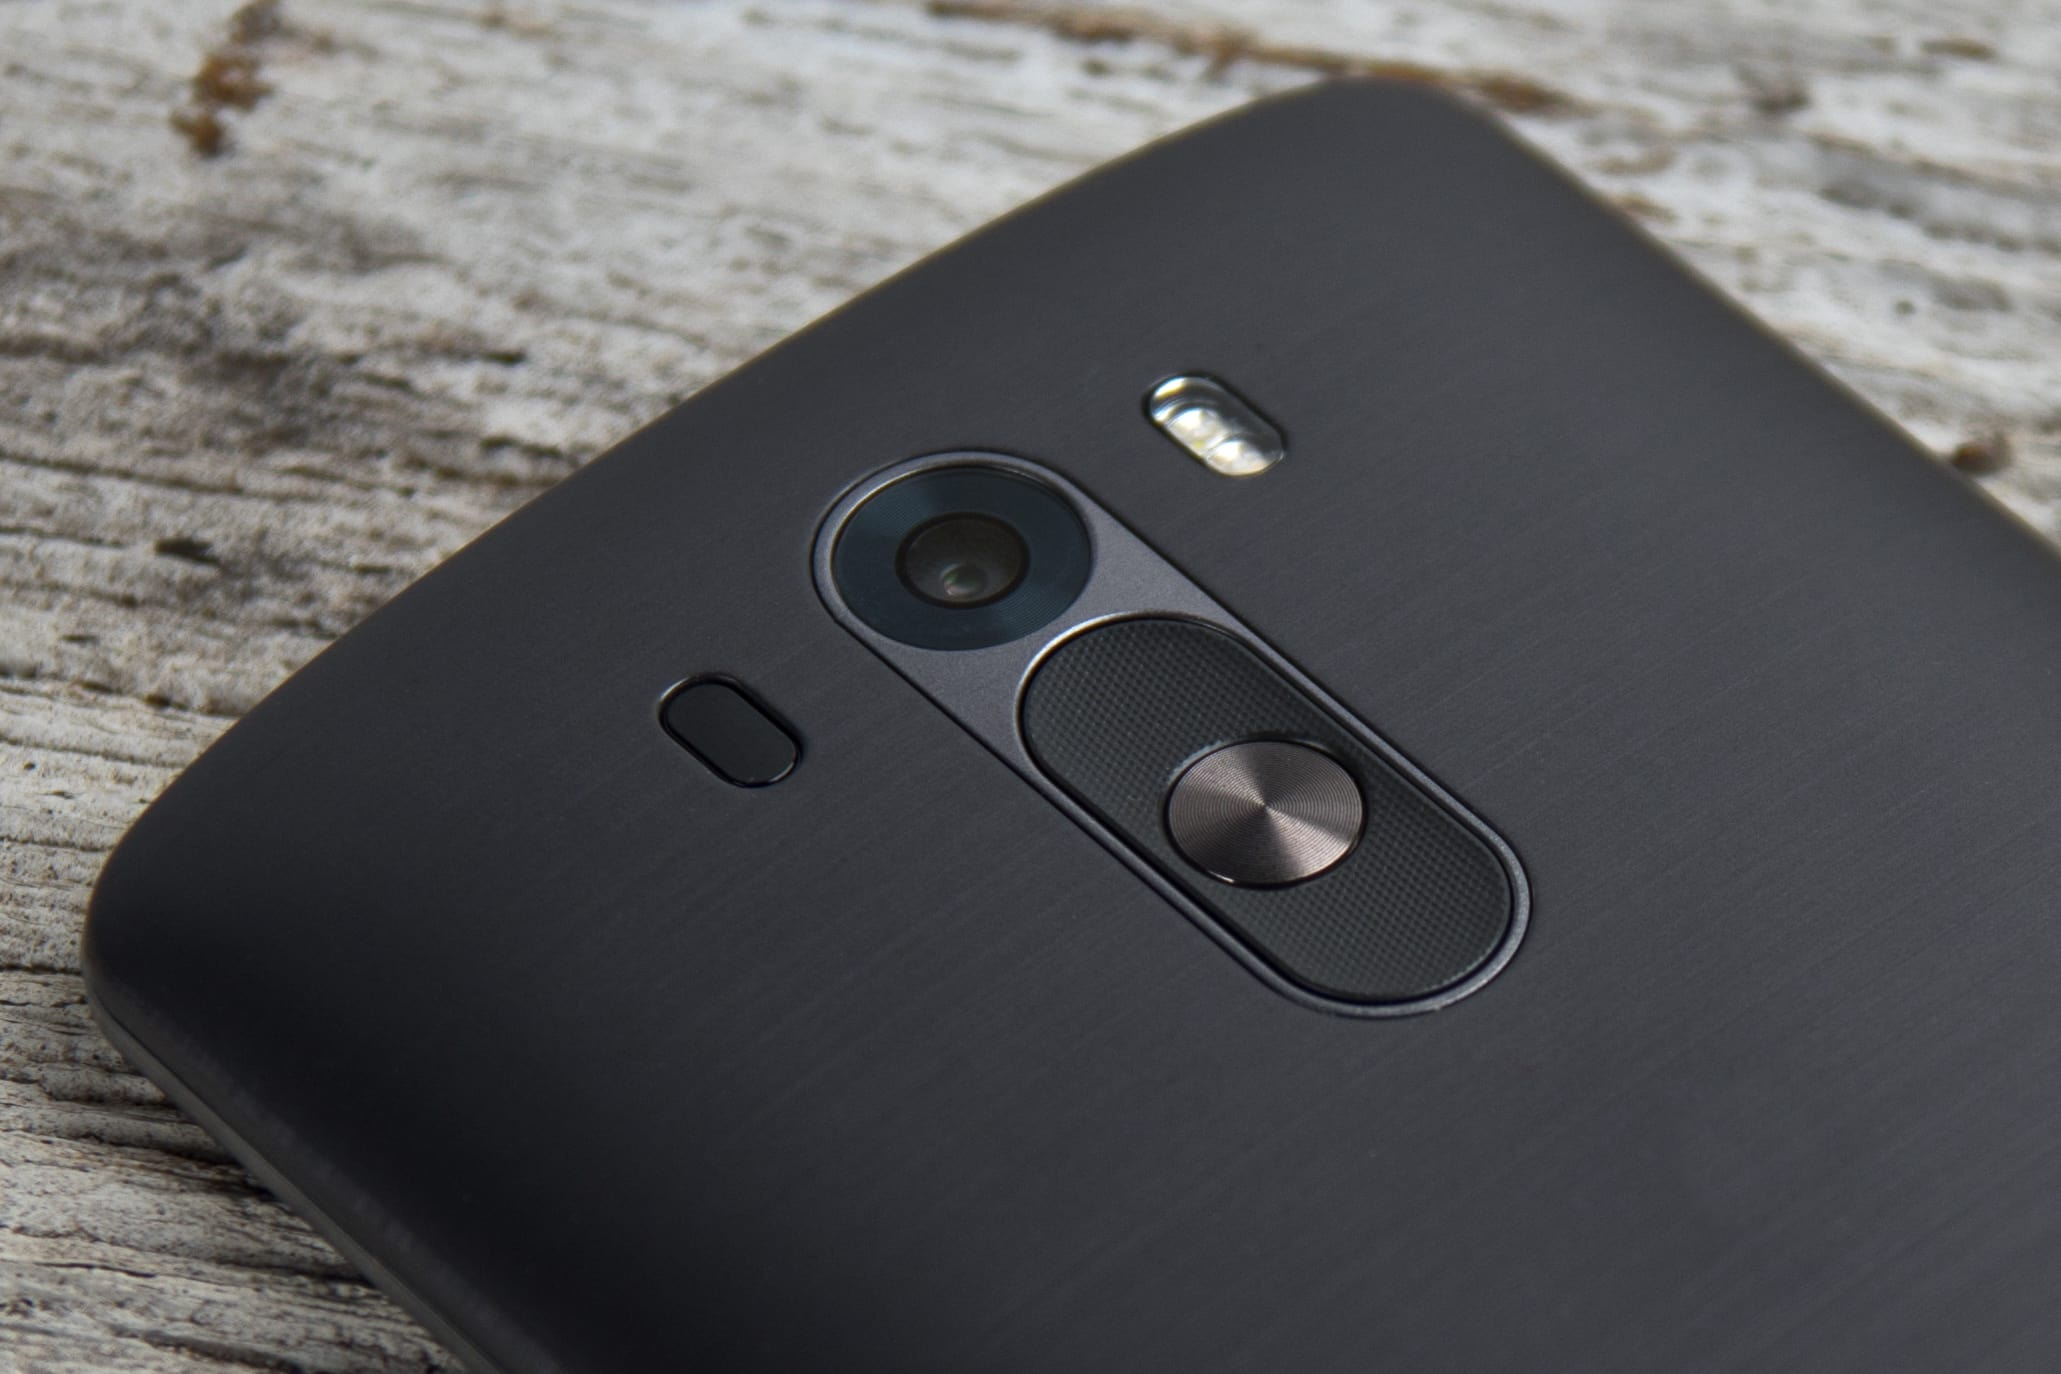 LG G3 Smartphone Review - Reviewed Smartphones